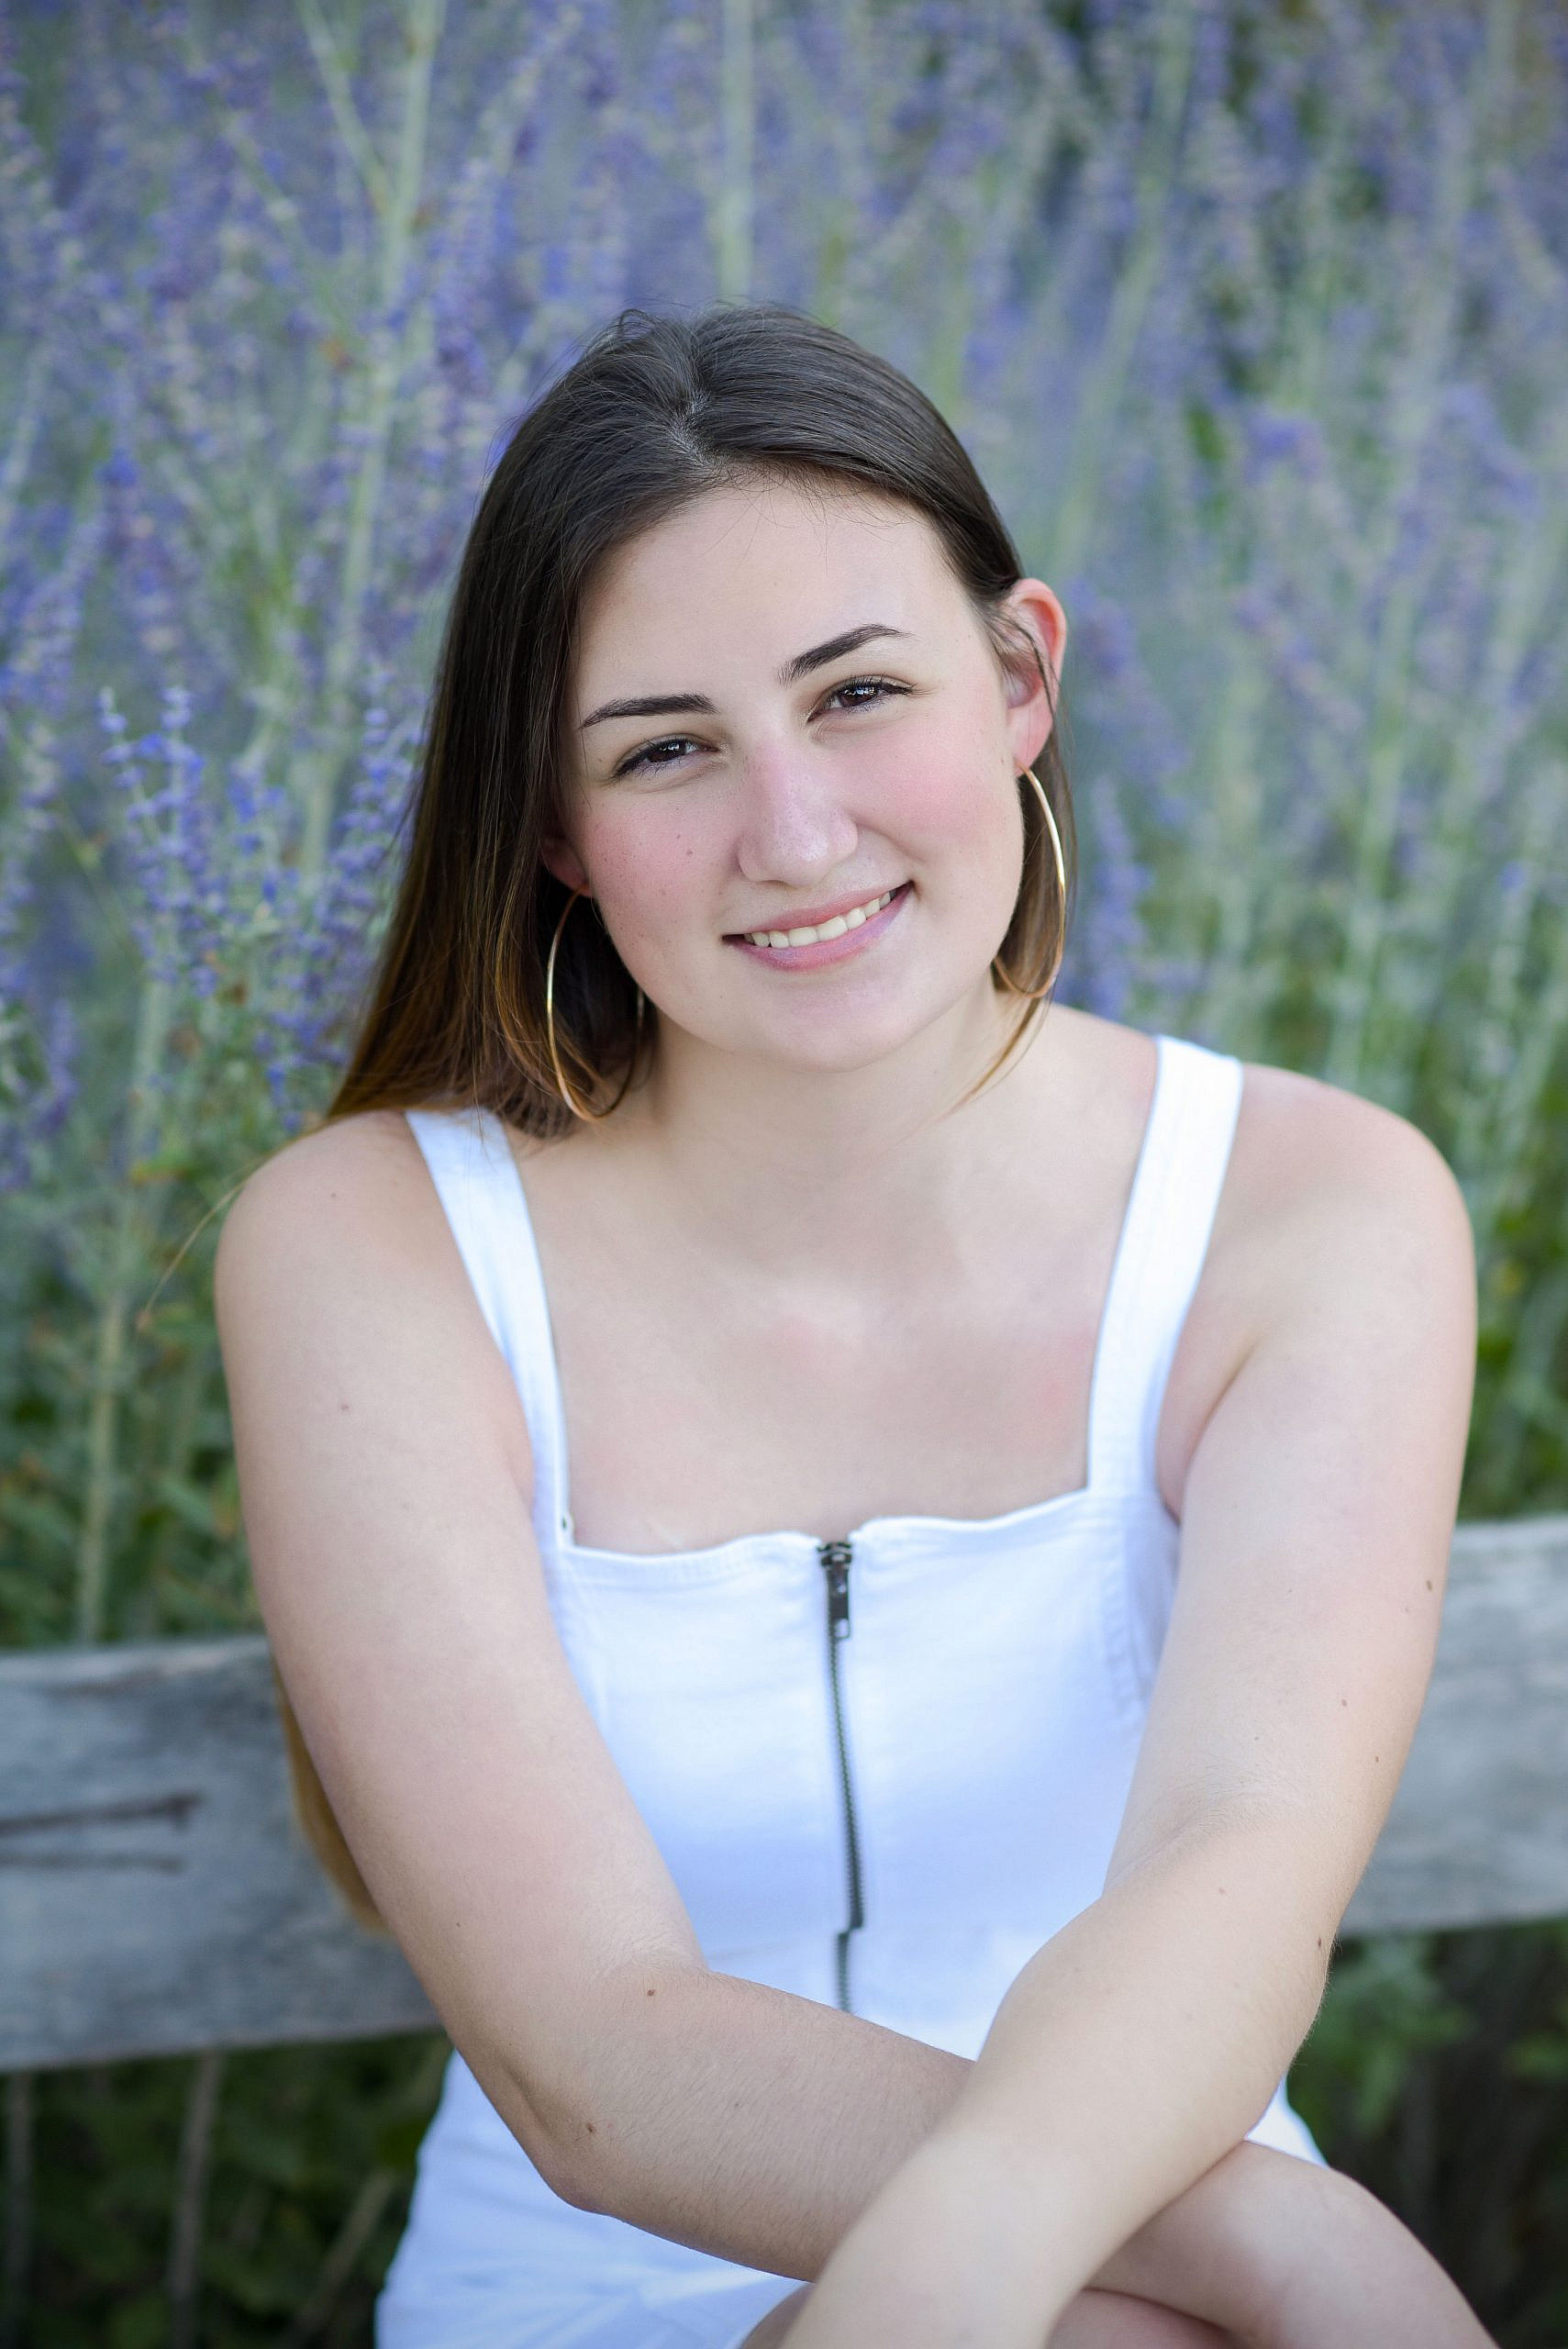 What-to-know-before-you-book-senior-pictures-Portland---Anna-Graf-Photography-2021